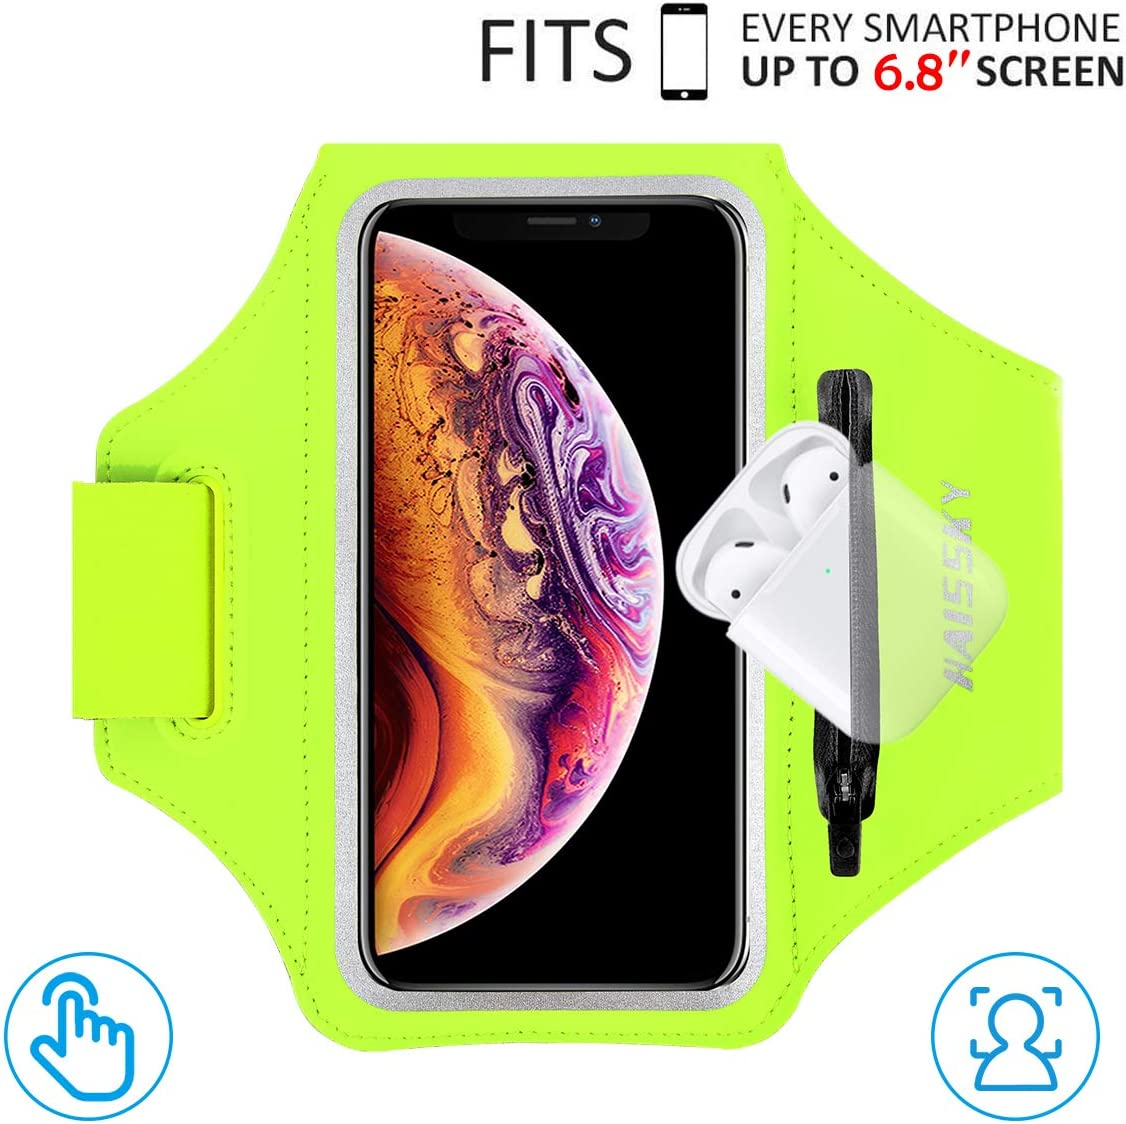 """HAISSKY Armband Case with Airpods Holder/Car Key Bag Cell Phone Holder Gym Case Fits iPhone 11 Pro Max/11 Pro/Xs Max/XR 8 7 6,Galaxy S10+/S10/S10e/S9+ with Key Holder&Card Slot up to 6.8"""" (Green)"""